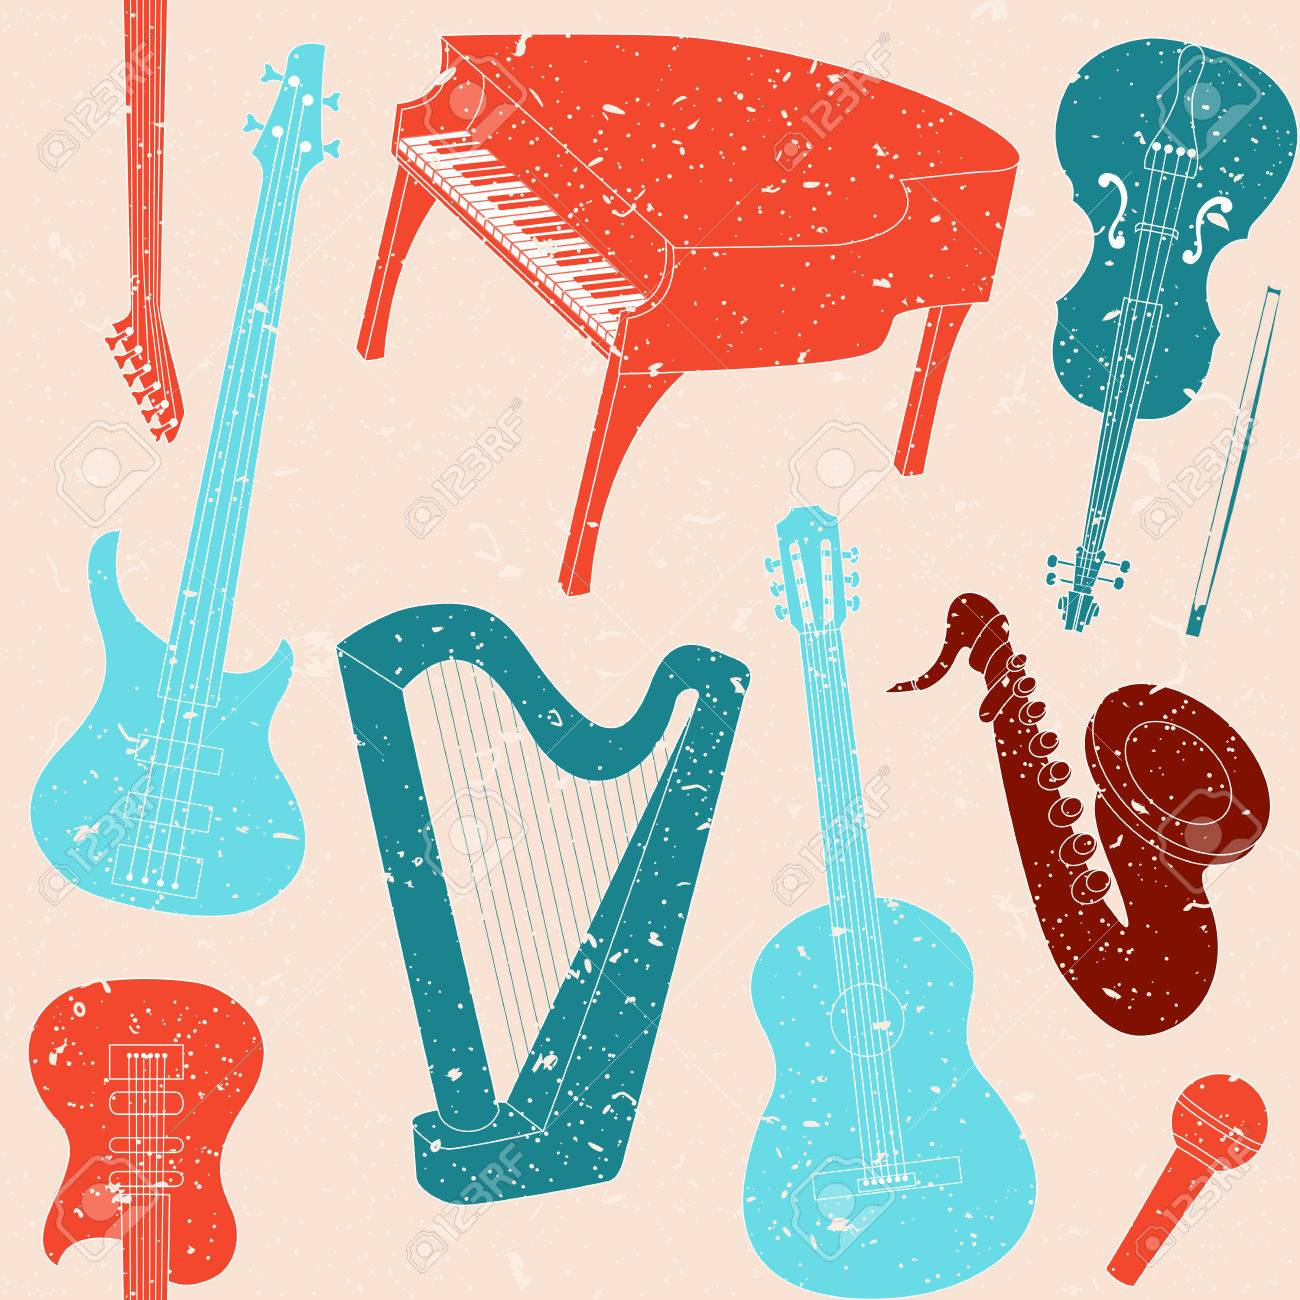 Grunge seamless pattern with musical instruments silhouettes Stock Vector - 25126002